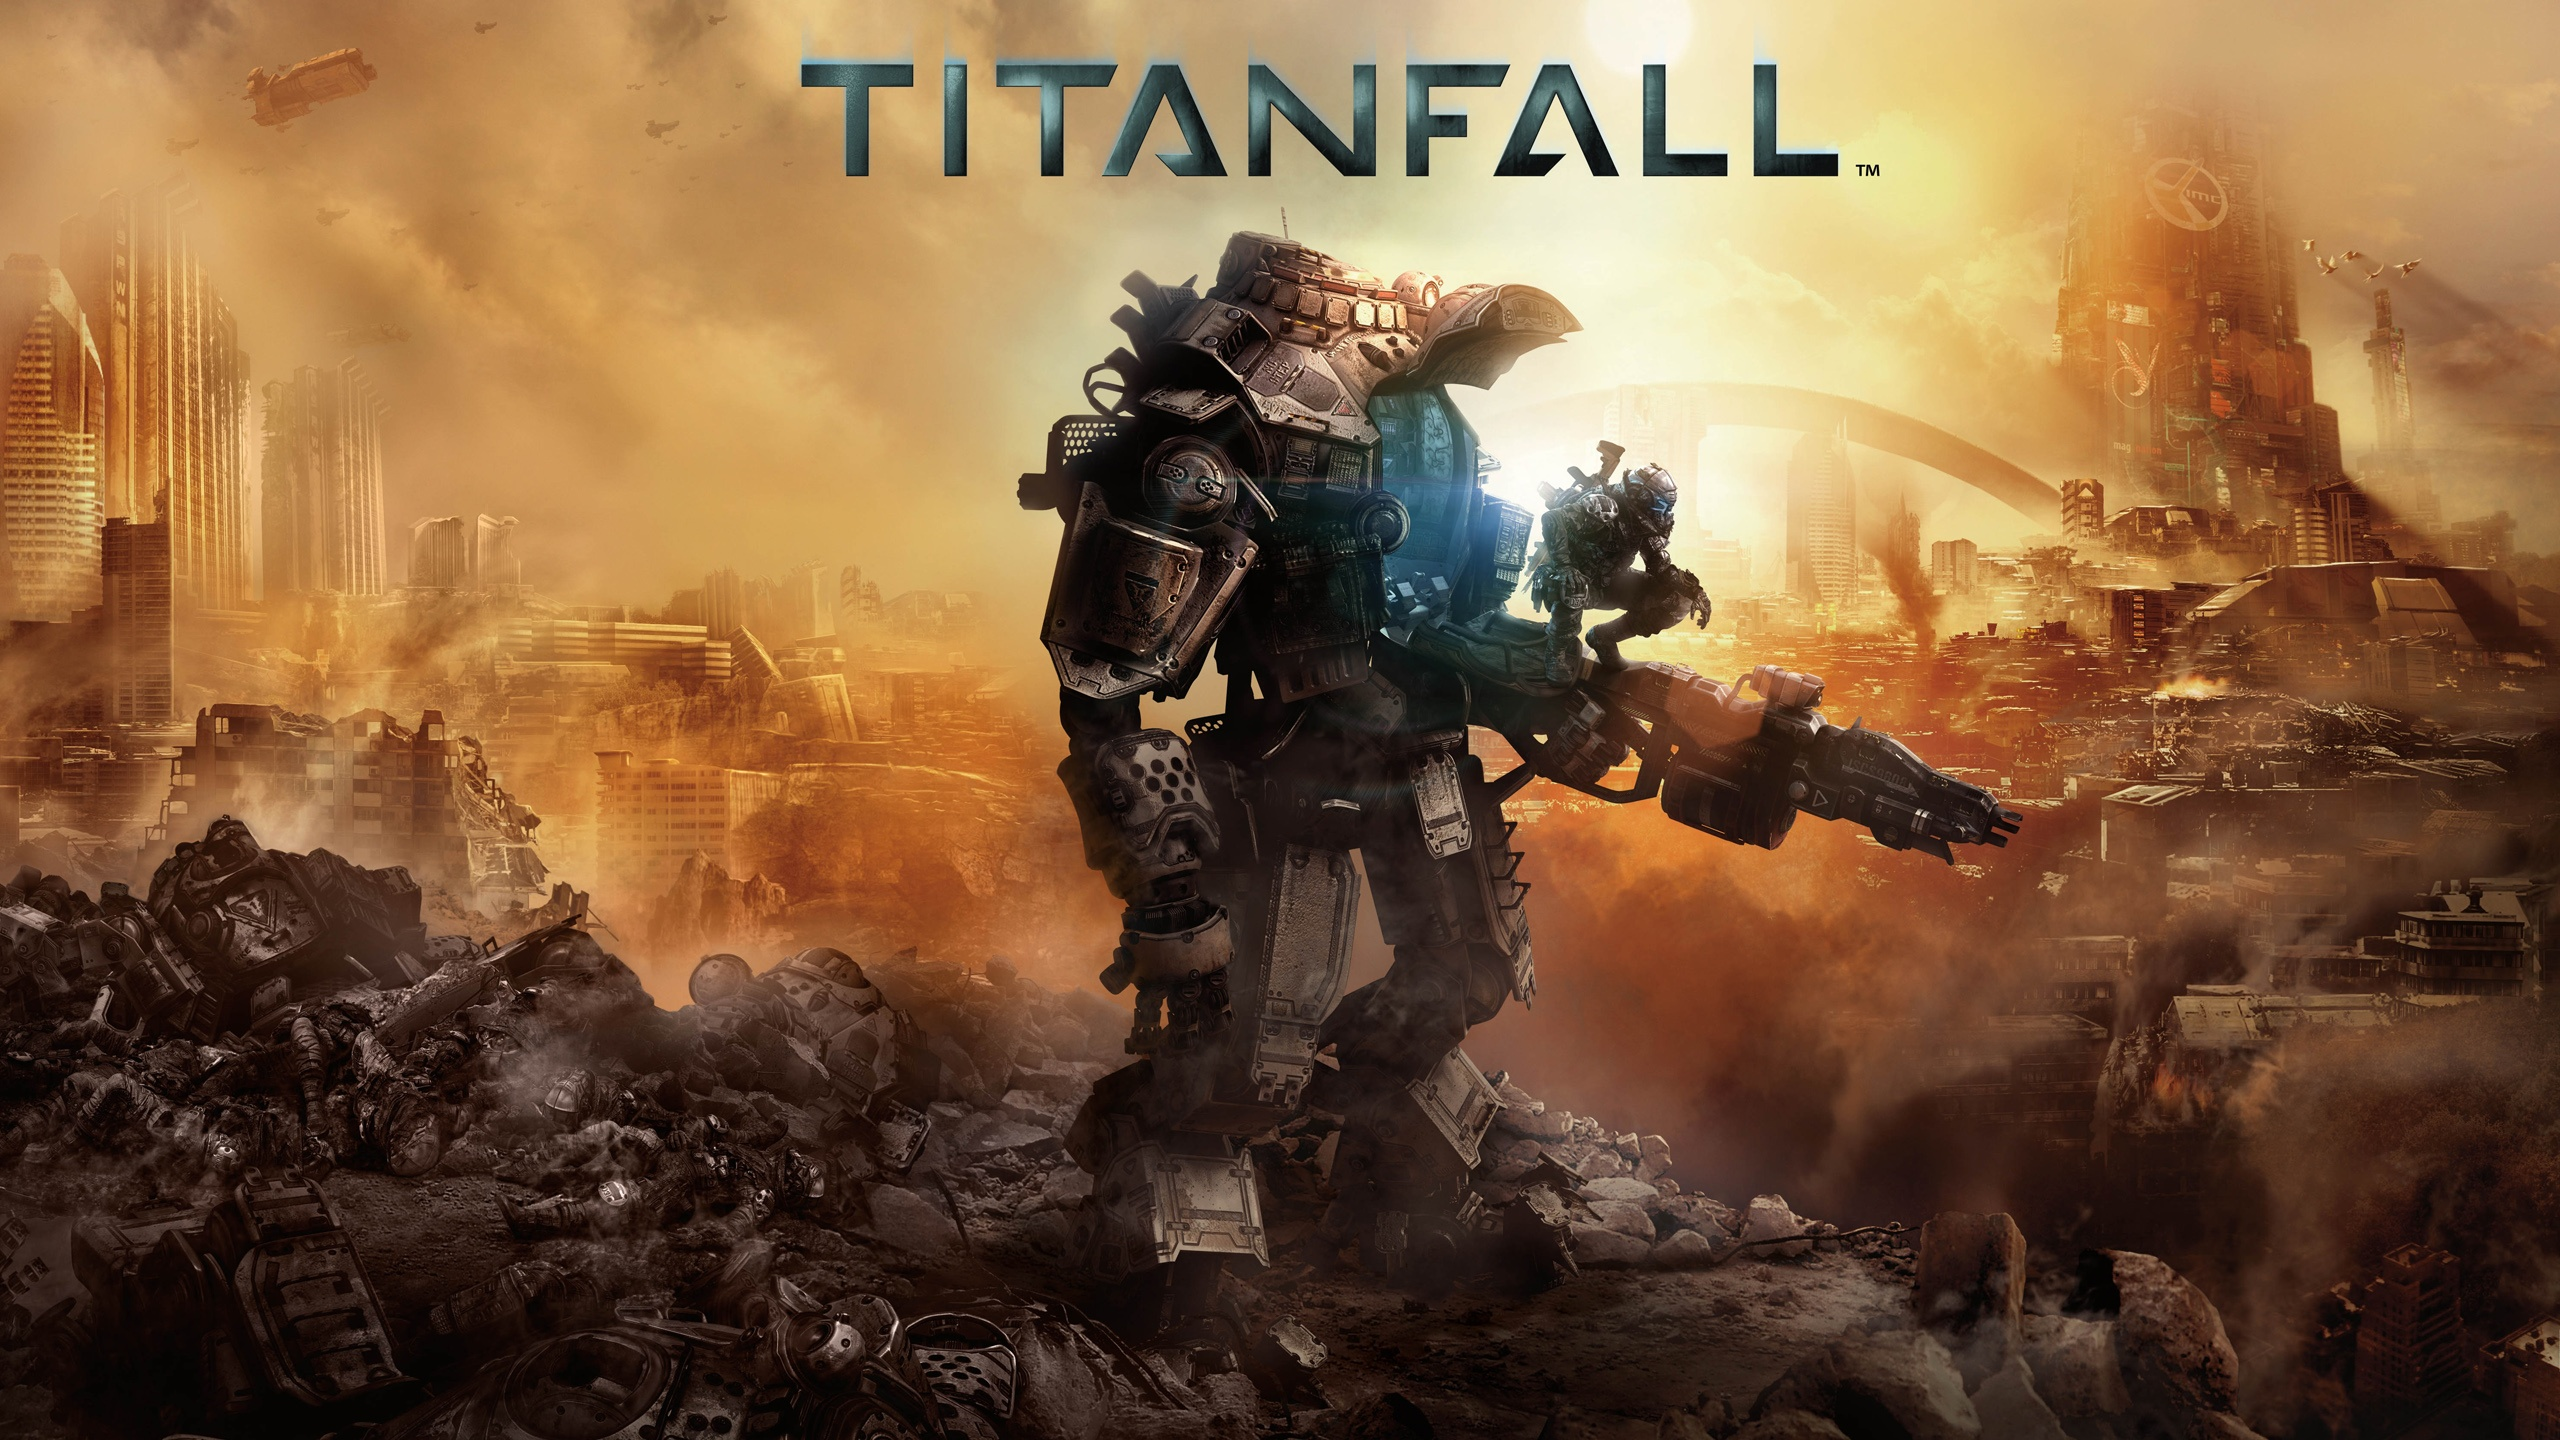 HD Wallpapers for Titanfall Free Backgrounds for Your Lock 2560x1440